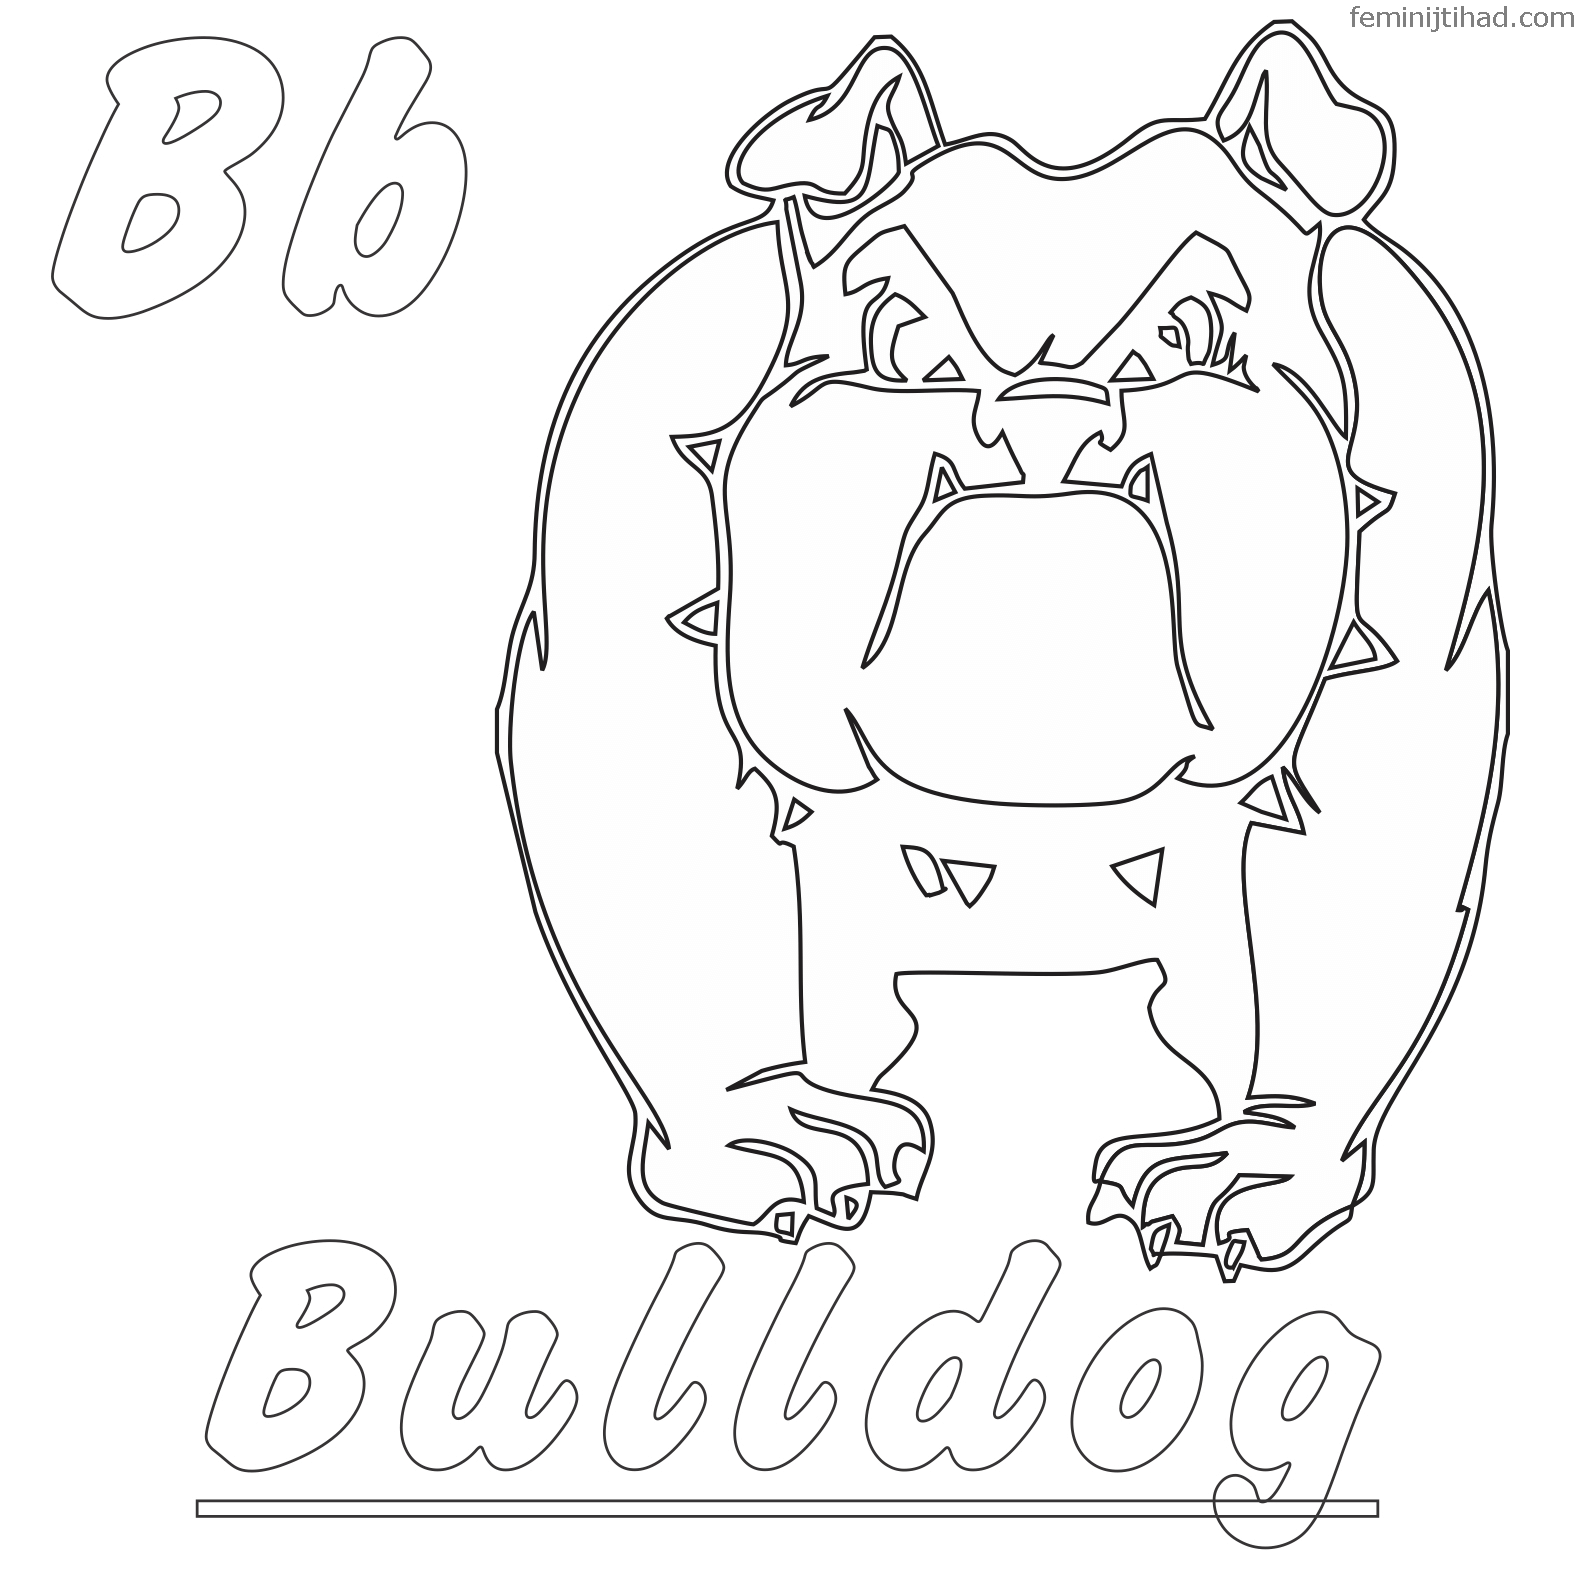 1575x1575 Bulldog Coloring Pages Free Download Coloring Pages For Kids